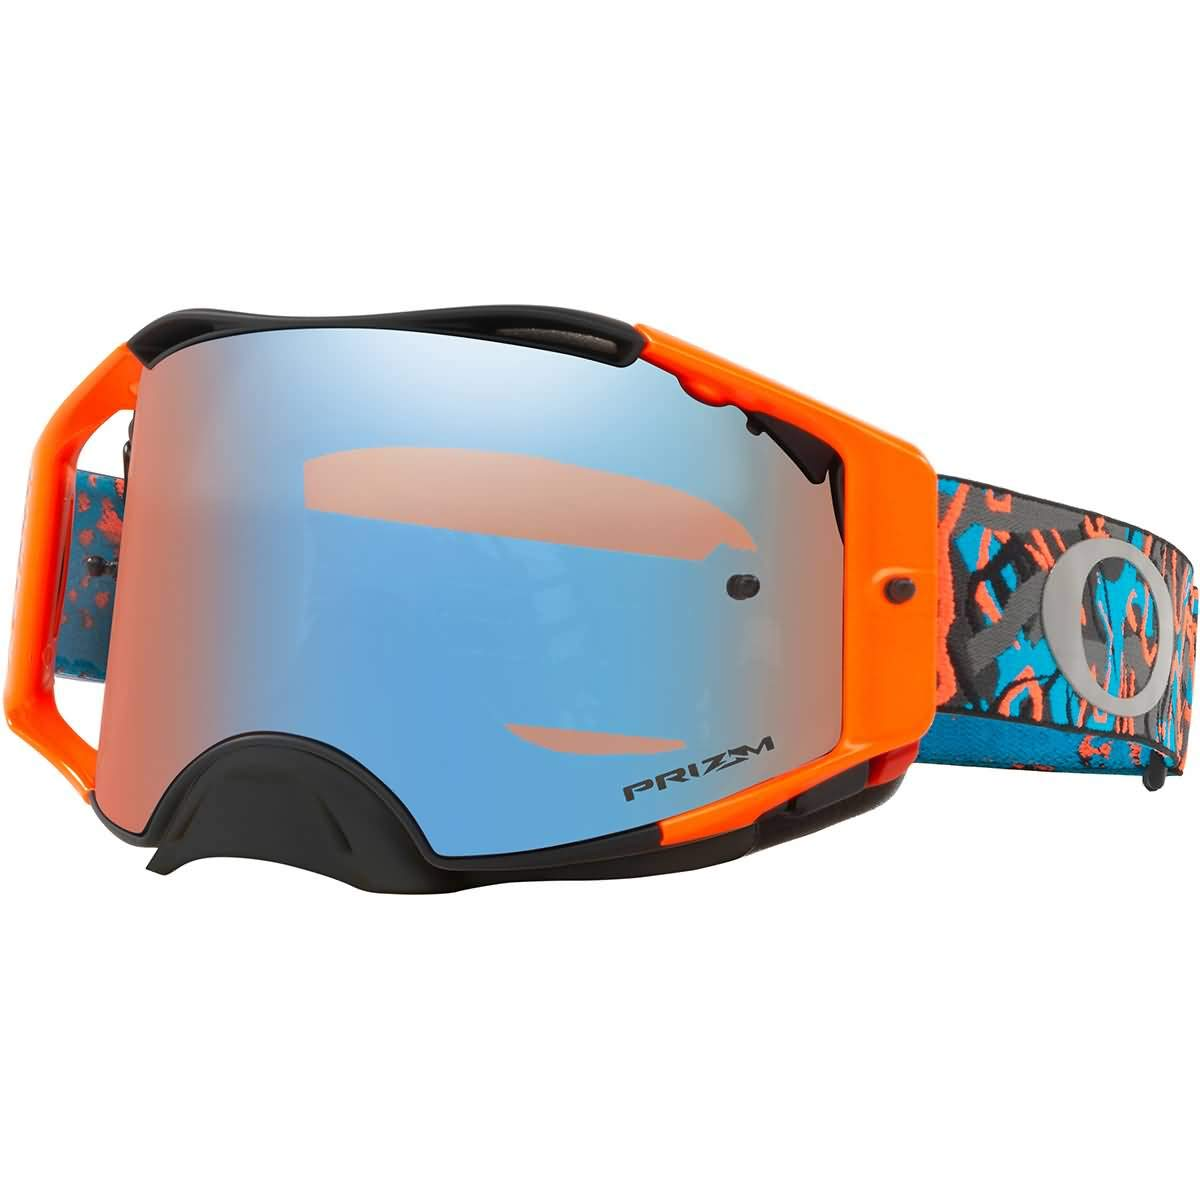 Oakley Airbrake MX Adult Off-Road Motorcycle Goggles - Camo Vine Night Orange Blue w/Prizm Sapphire